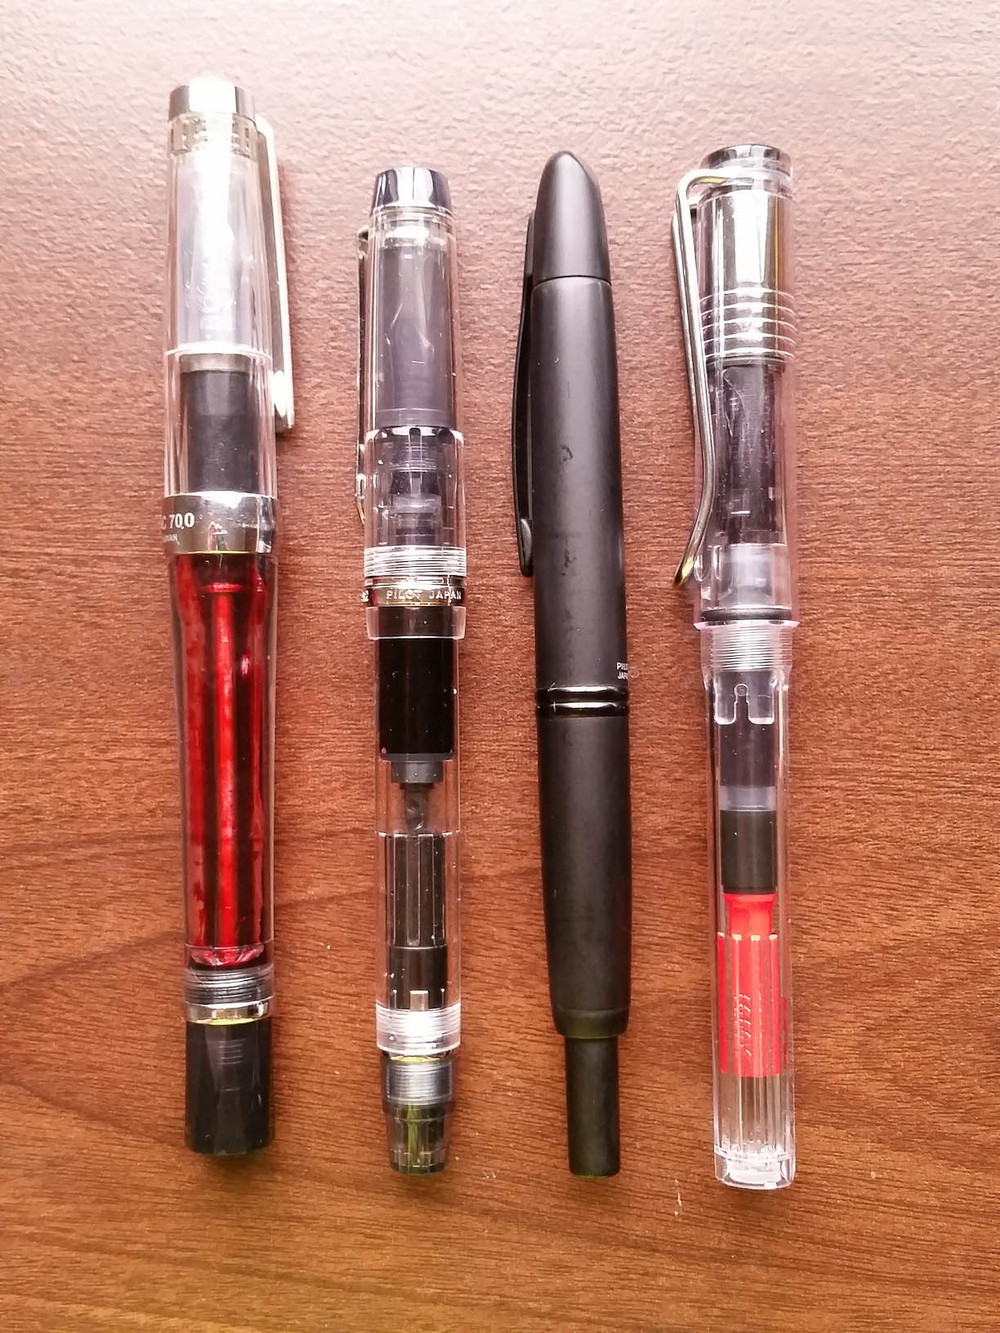 Left to Right: TWSBI Vac700, Pilot Custom Heritage 92, Pilot Vanishing Point, Lamy Vista